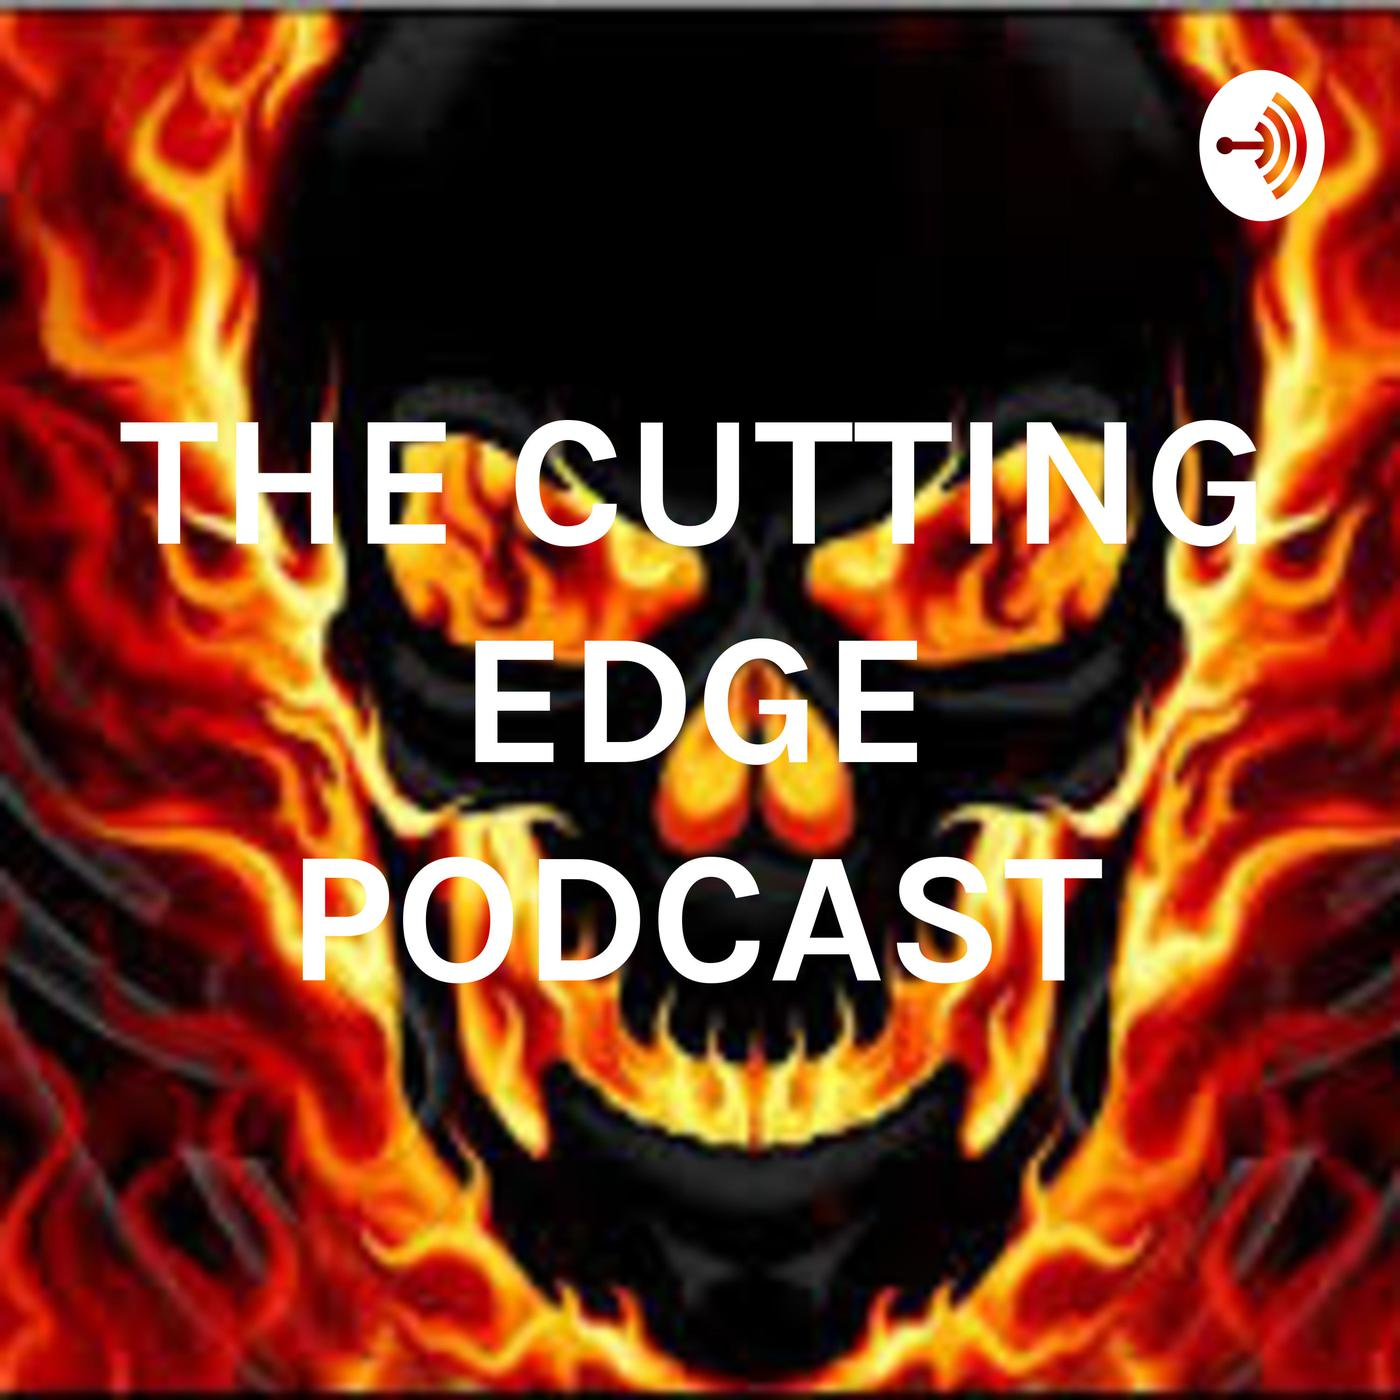 The Cutting Edge Podcast The Cameraman Listen Notes